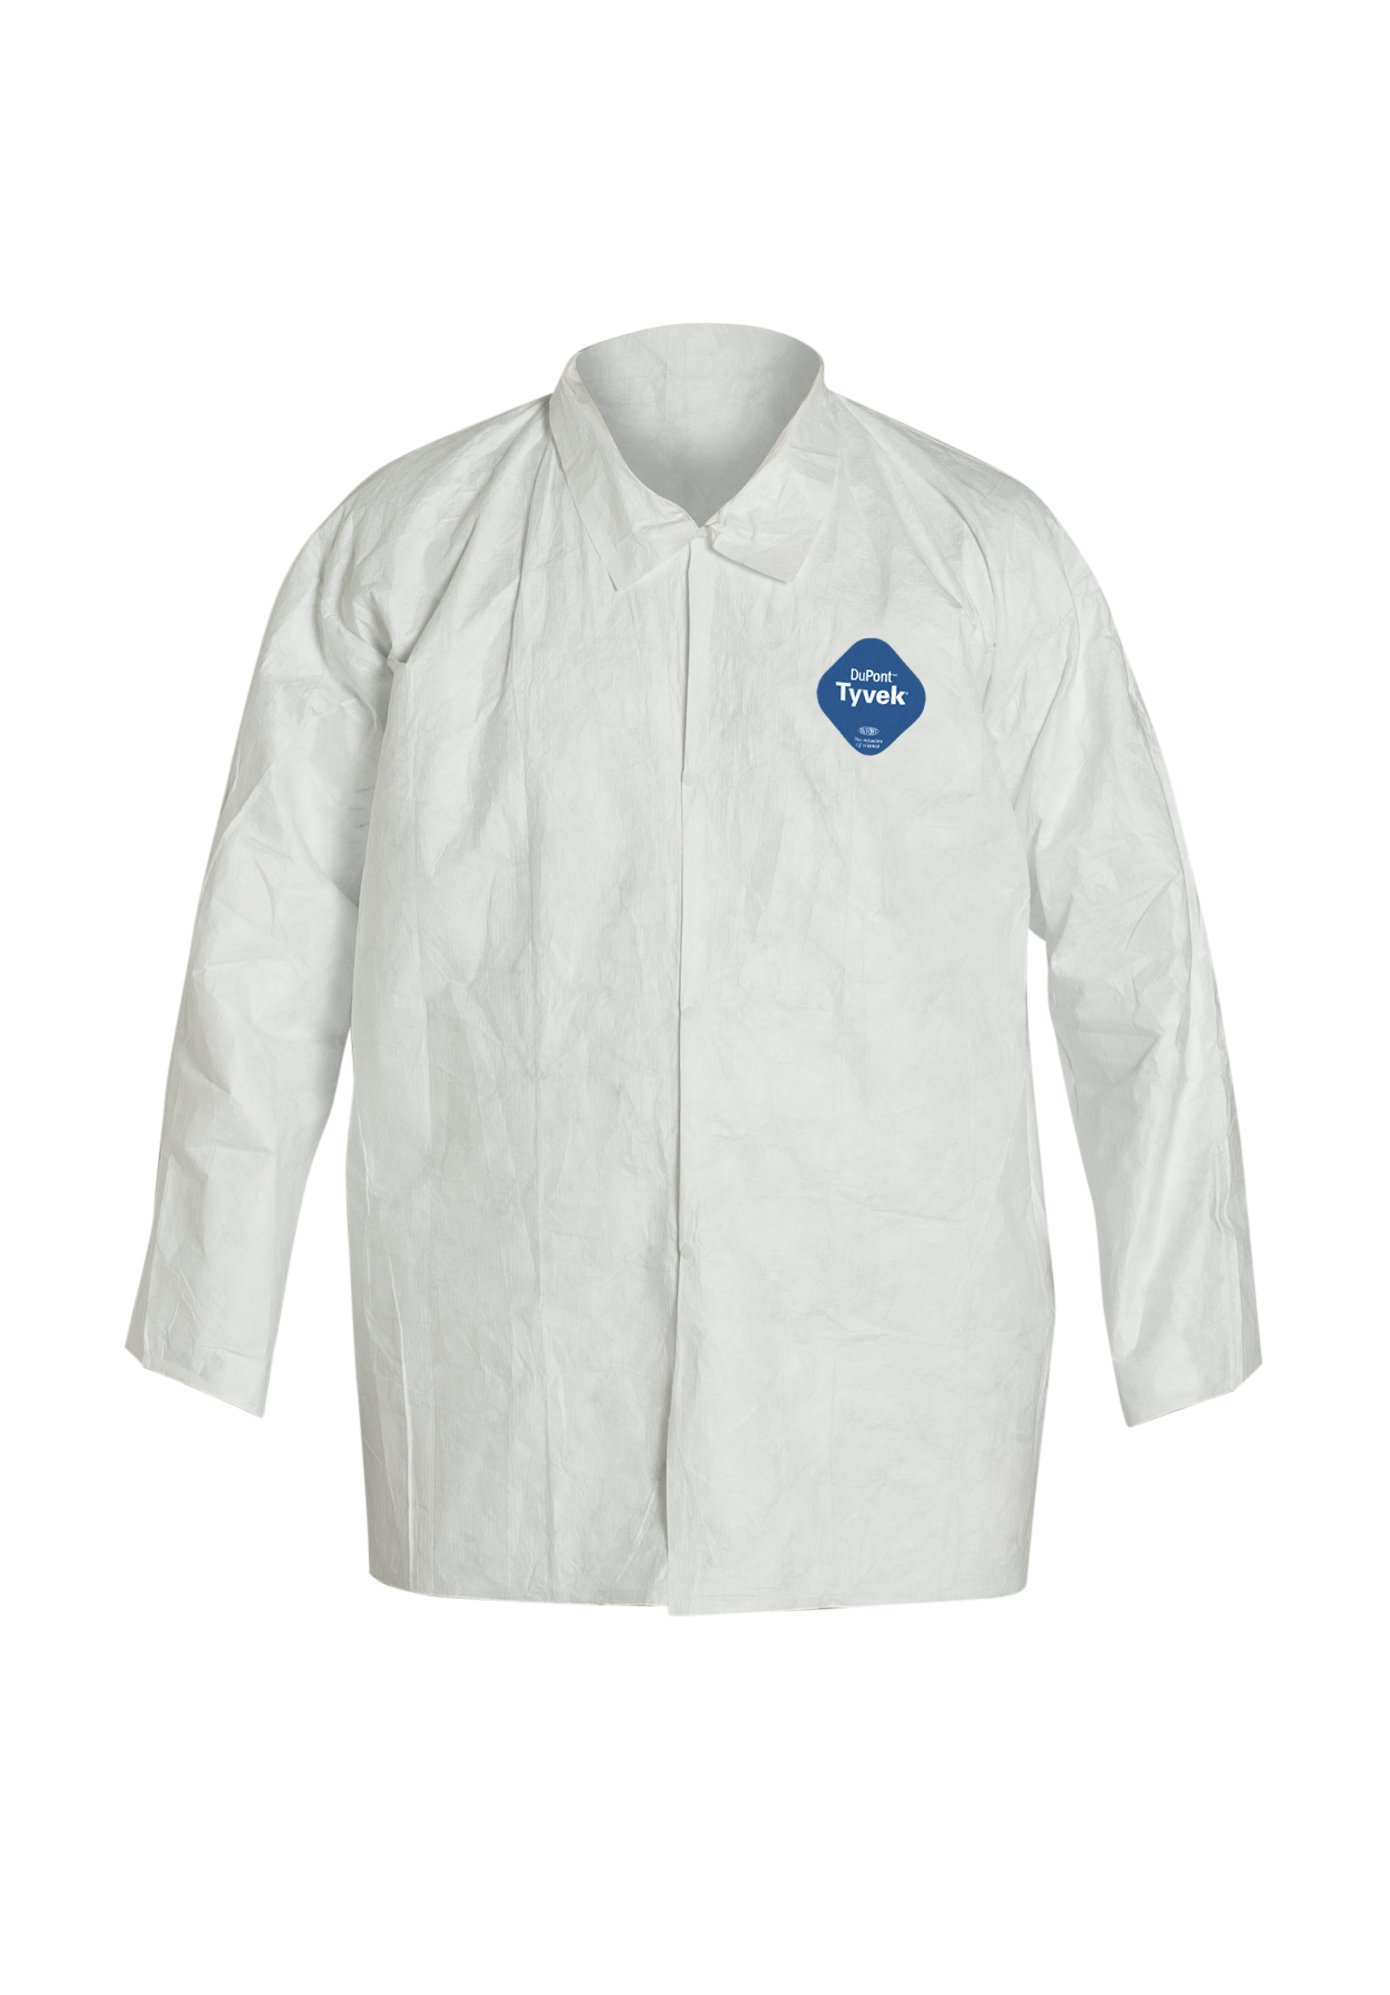 DuPont Tyvek 400 TY303S Disposable Shirt with Open Cuff, White, 2X-Large (Pack of 50) by DuPont (Image #1)